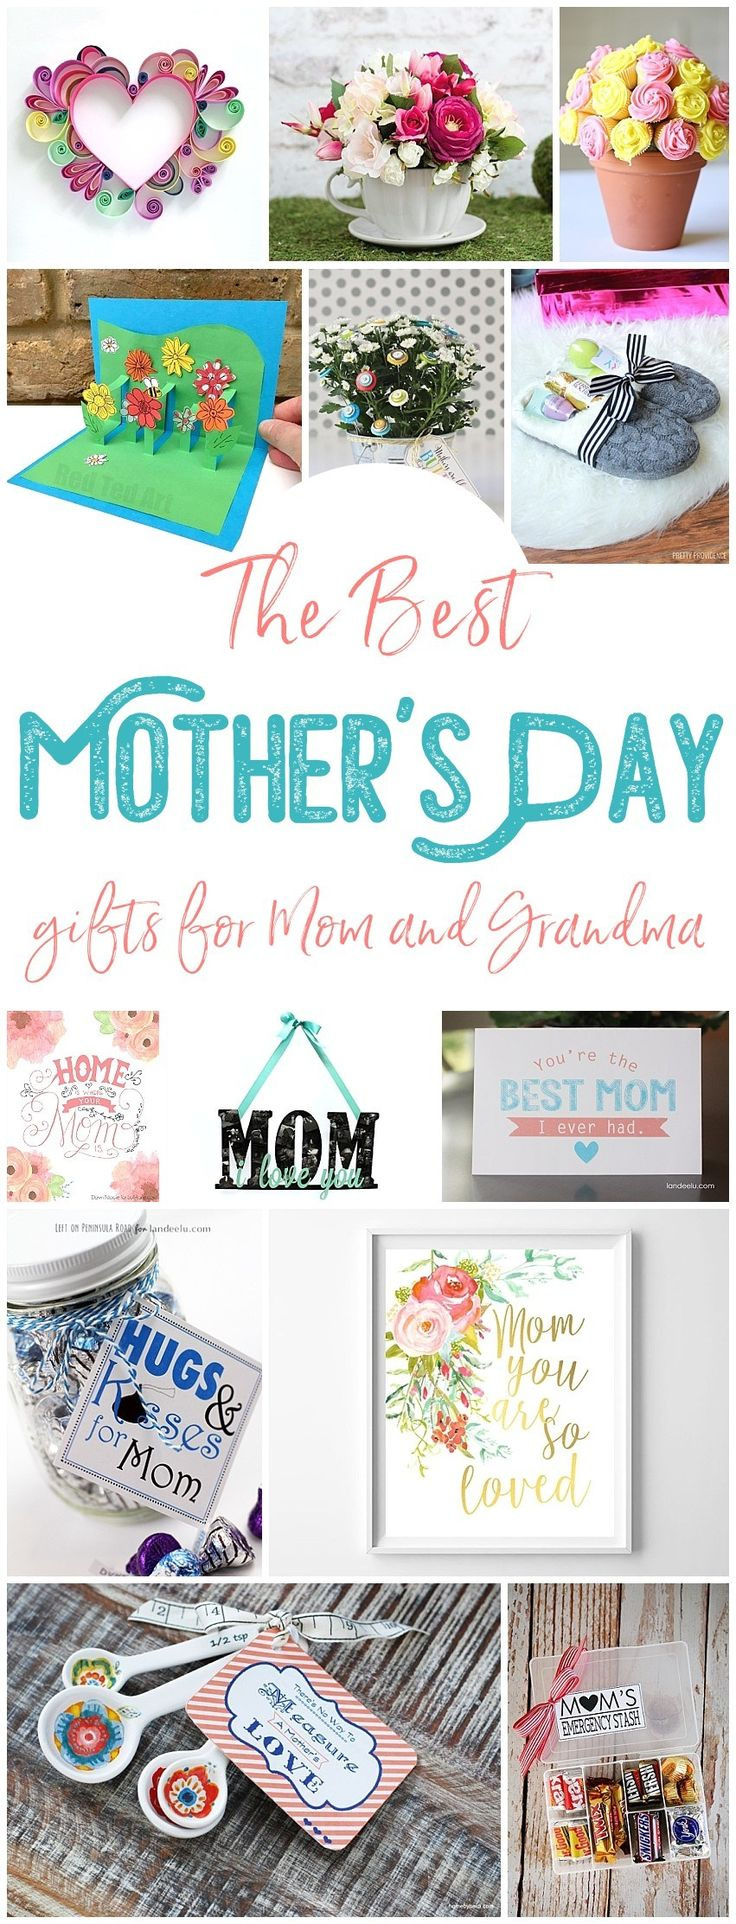 The BEST Easy DIY Mother's Day Gifts and Treats Ideas – Holiday Craft Activity Projects, Free Printables, Kids Paper Crafts and Favorite Brunch Desserts and Party Beverage Recipes for Moms and Grandmas - Dreaming in DIY